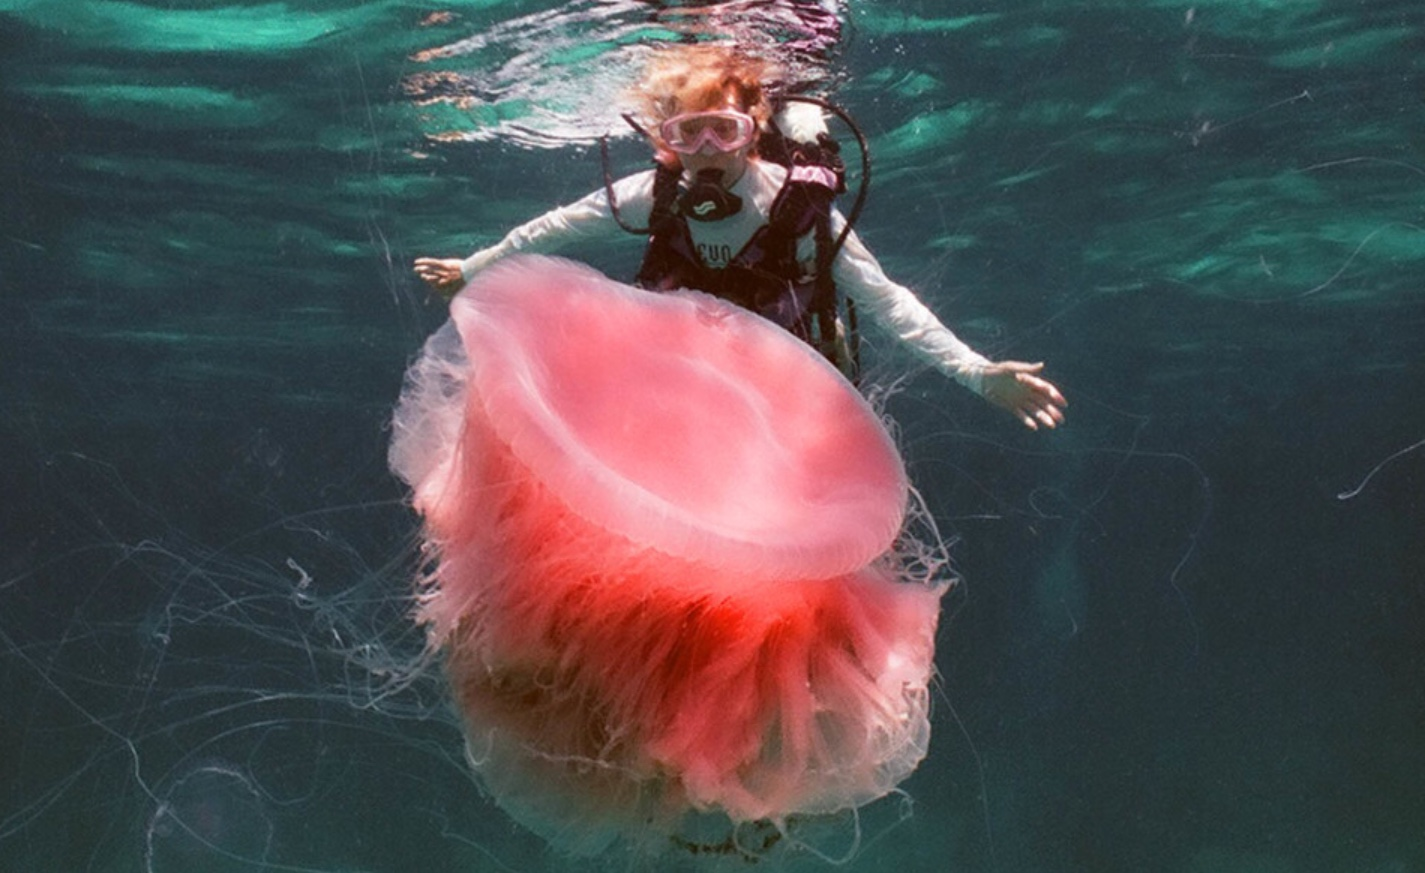 A scuba diver looking at the Pink jellyfish.